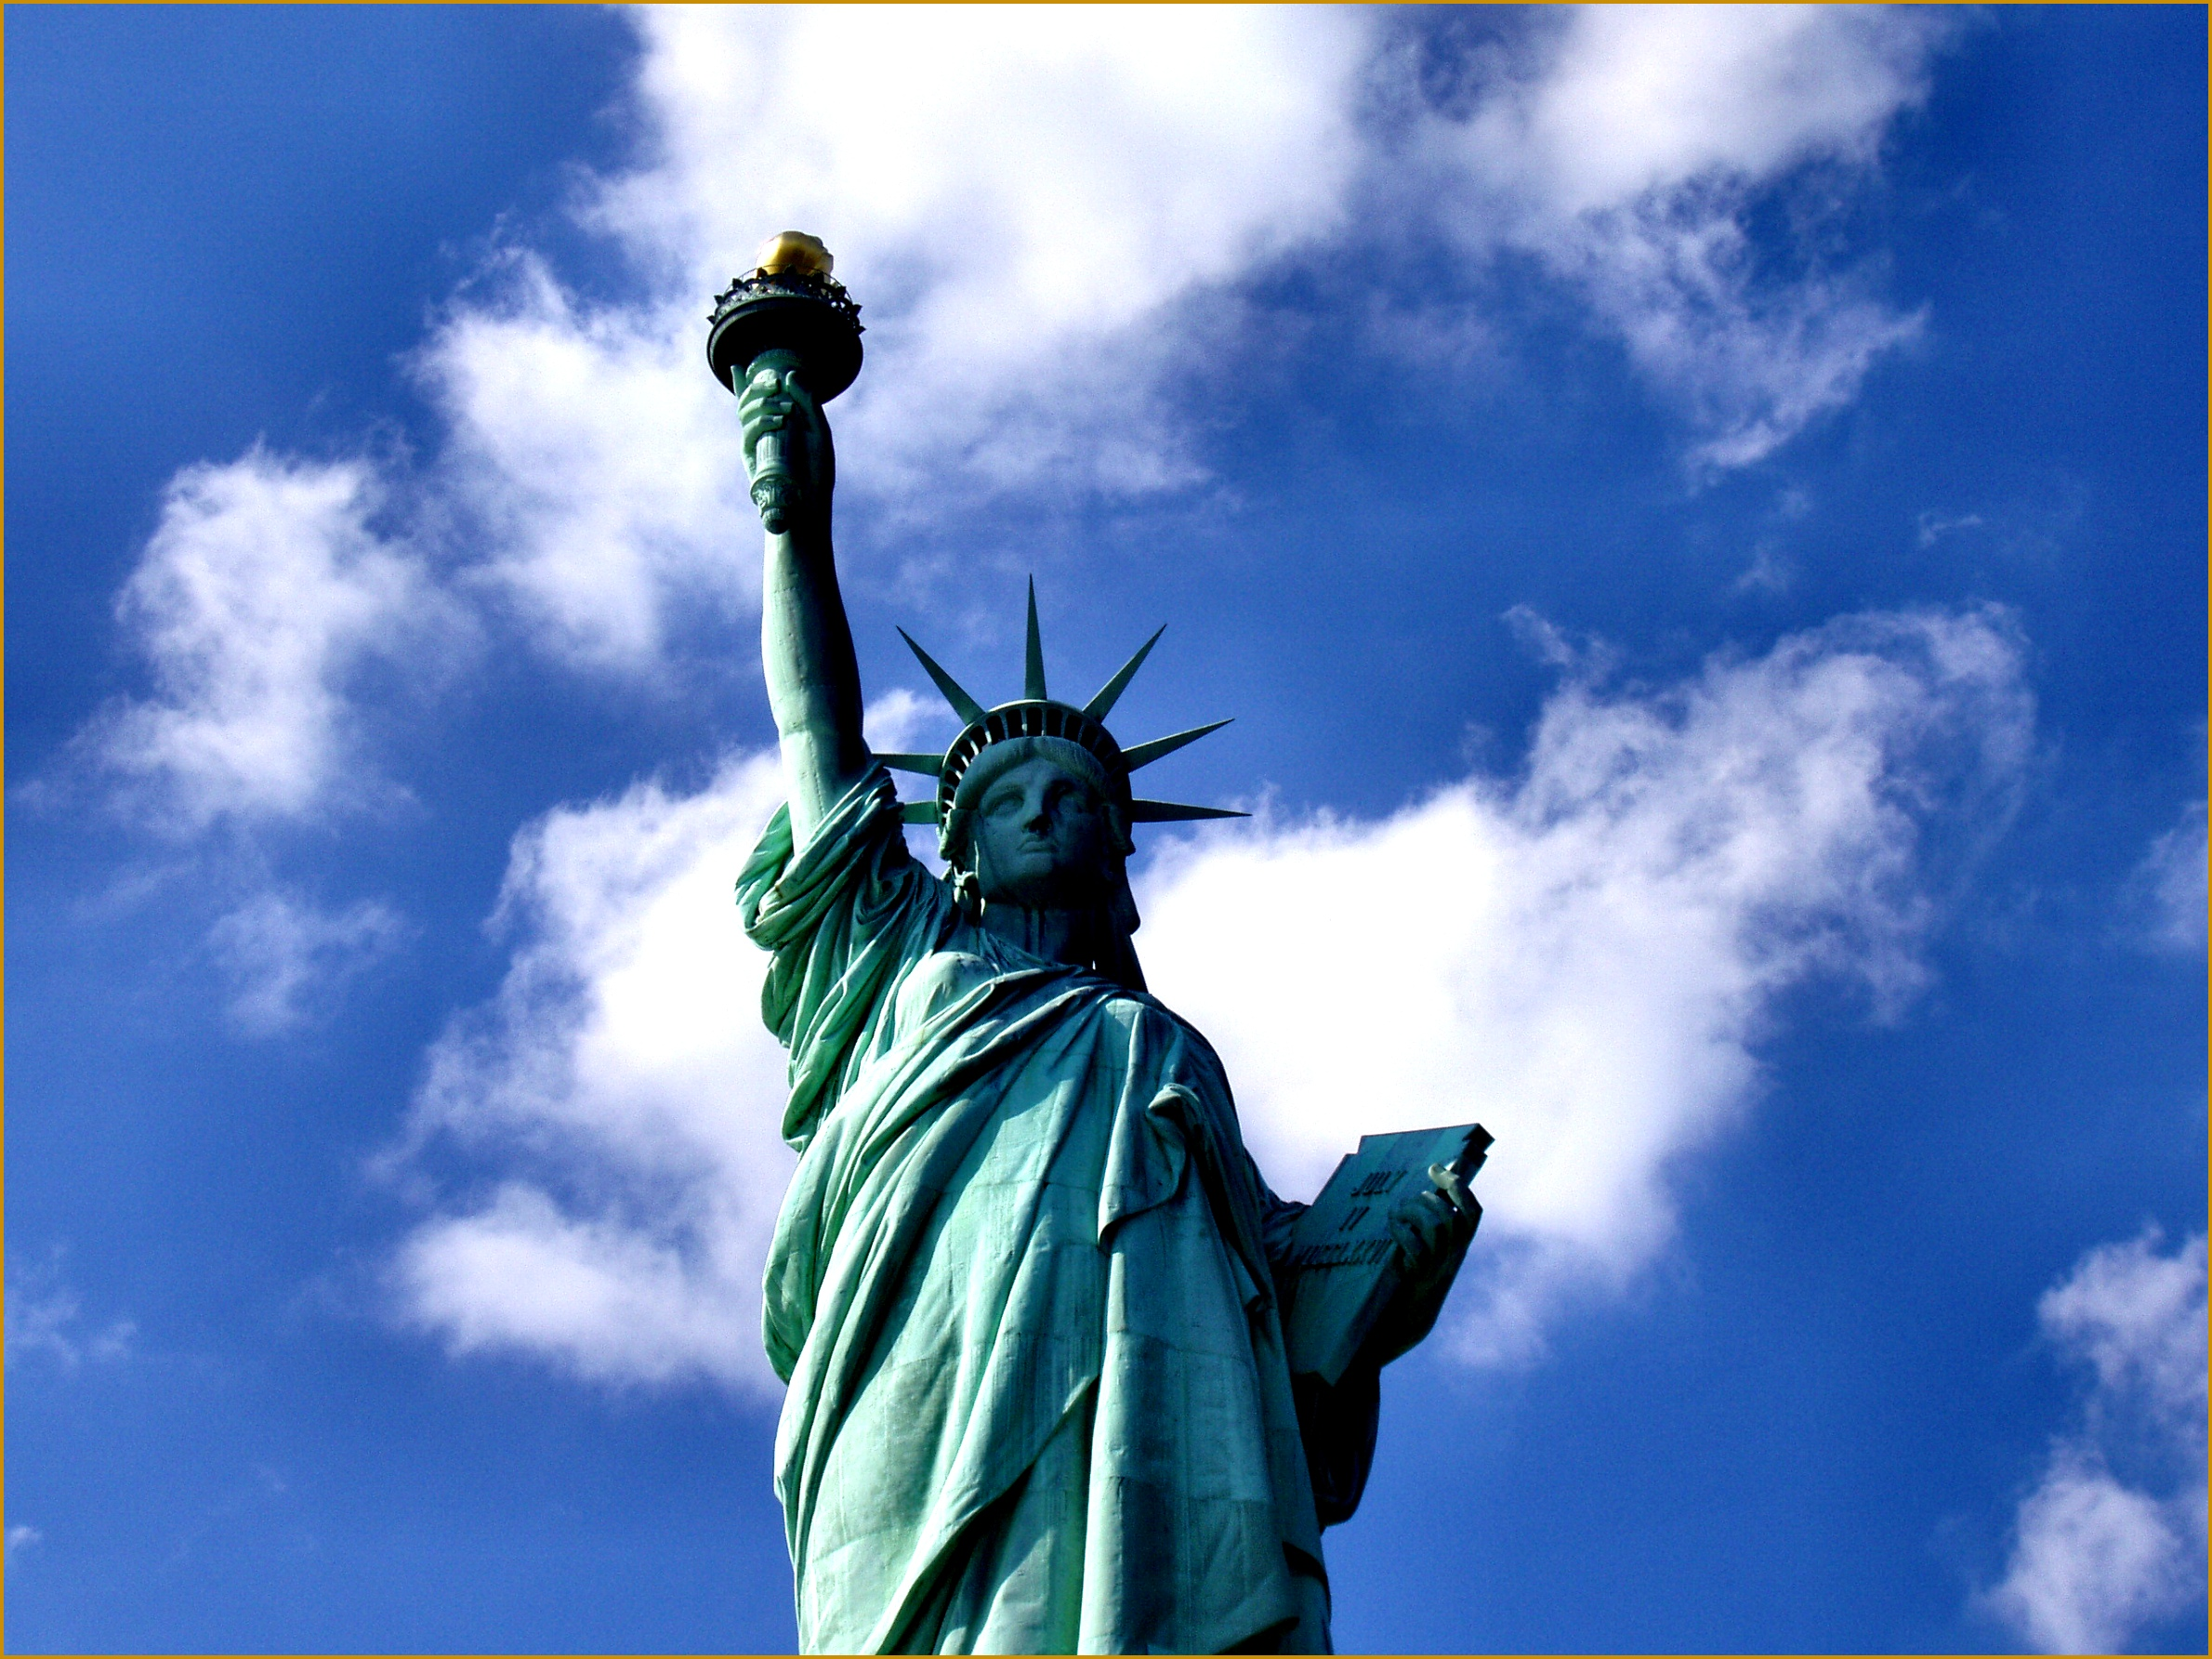 The Statue of Liberty in New York City dedicated in 1886 is a symbol of the United States as well as its ideals of freedom democracy and opportunity 23801785